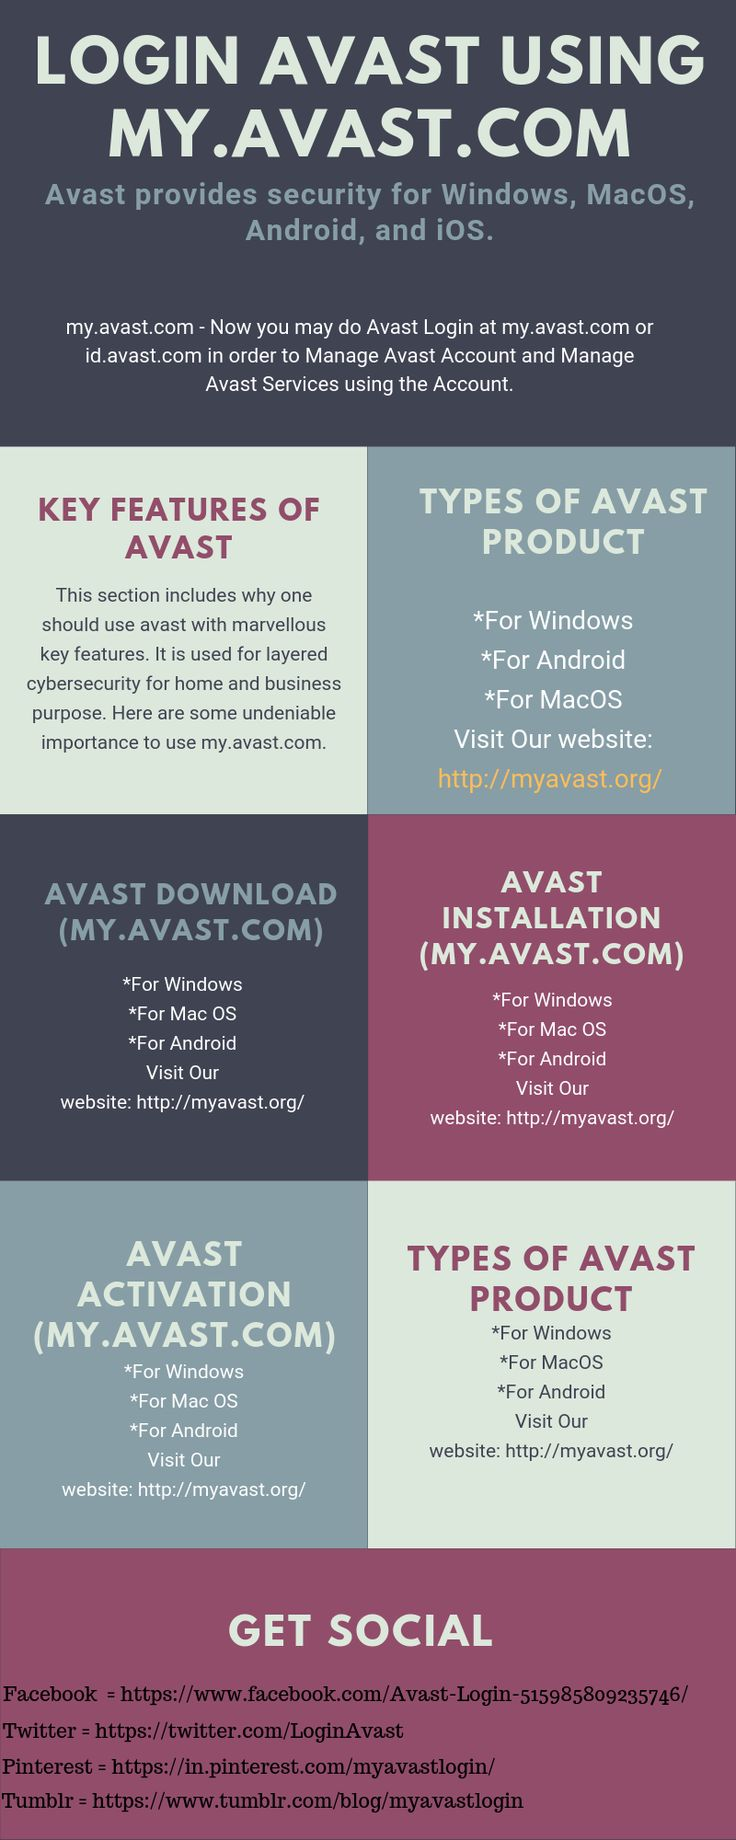 Avast is the best choice you can make for your cyberattack